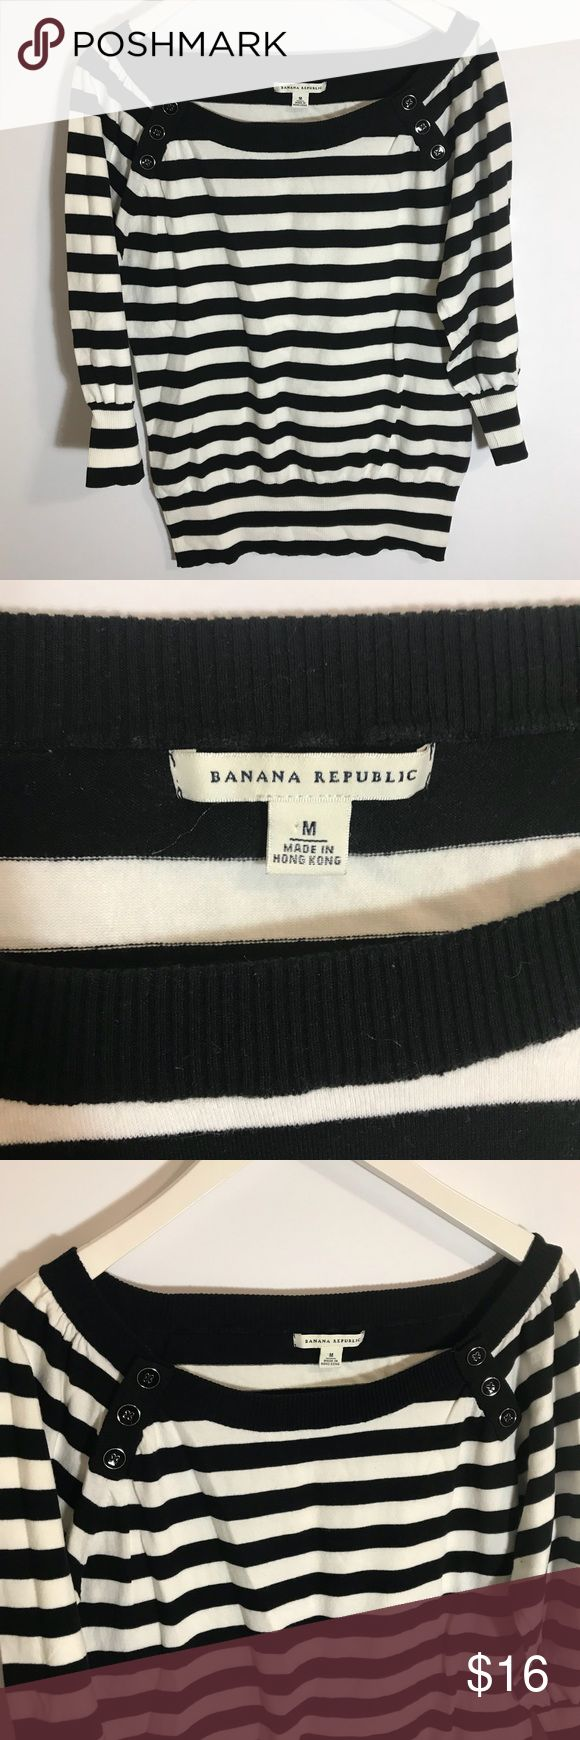 Banana republic striped top Banana republic striped top  size medium  three buttons on each side of shoulders  in excellent condition no flaws Banana Republic Tops